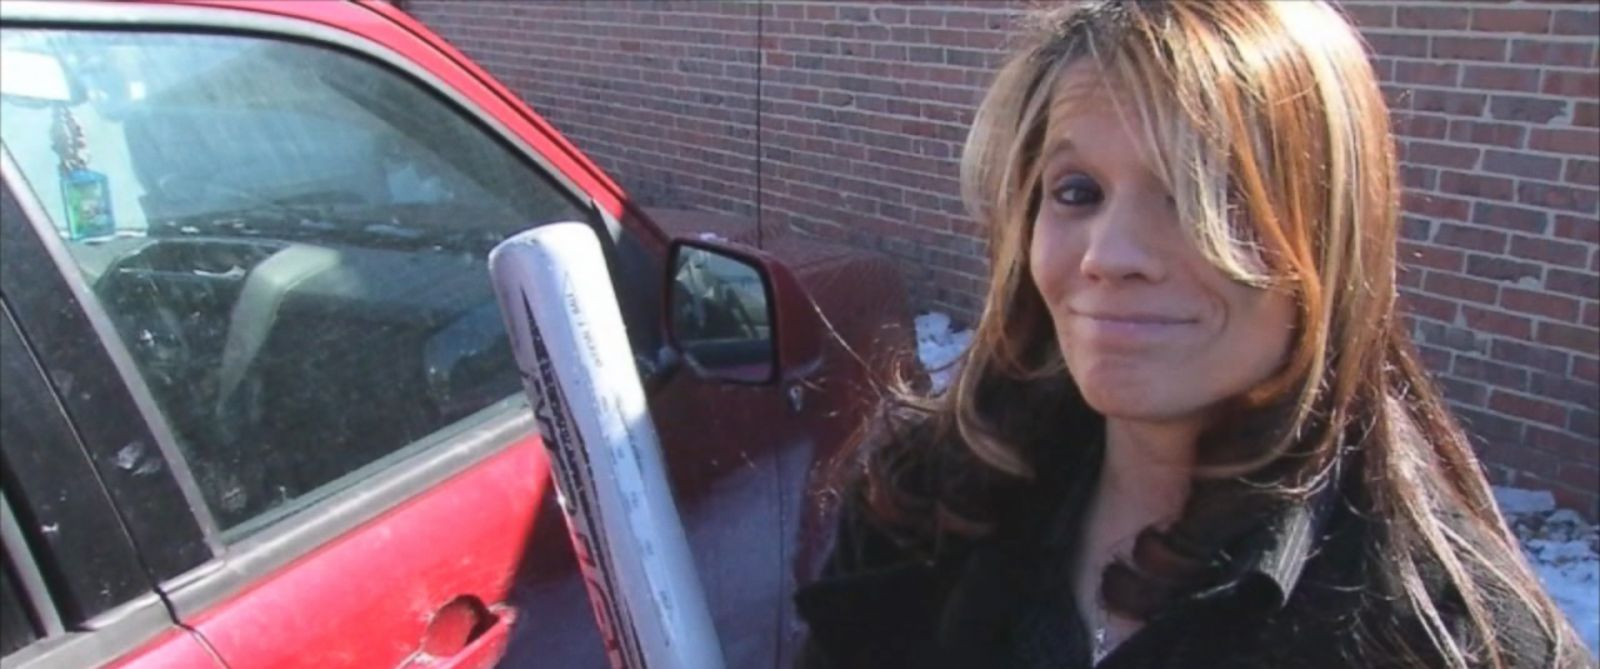 PHOTO: Jessica Farley used her sons baseball bat to bust down Charlie Cottrills car window to help rescue him from his car filled with exhaust fumes.